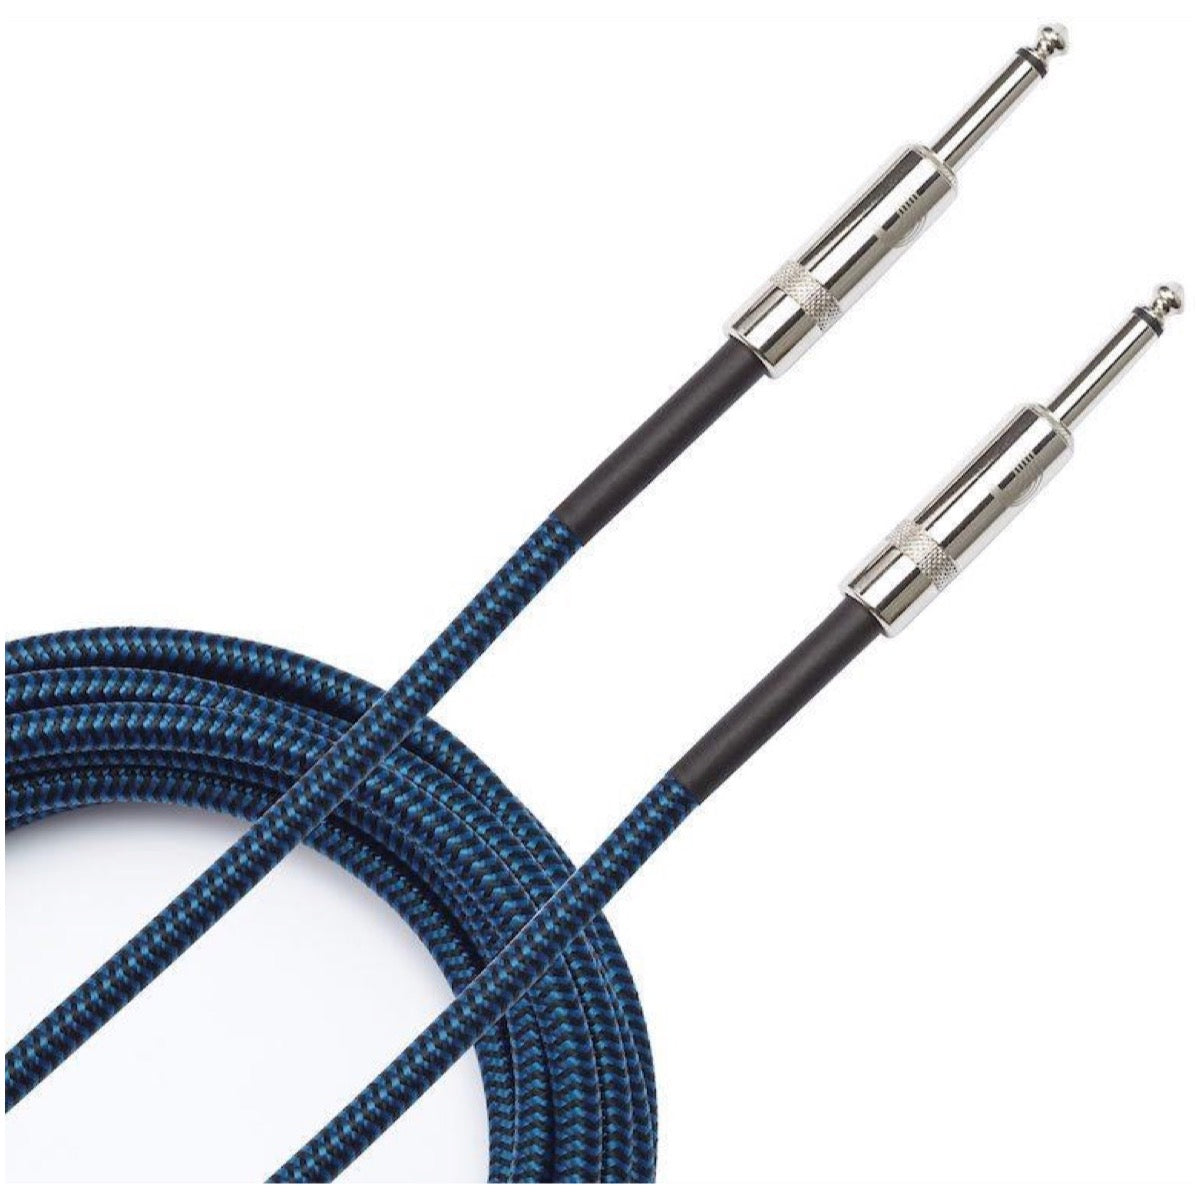 D'Addario Braided Instrument Cable, Blue, PW-BG-15BU, 15 Foot